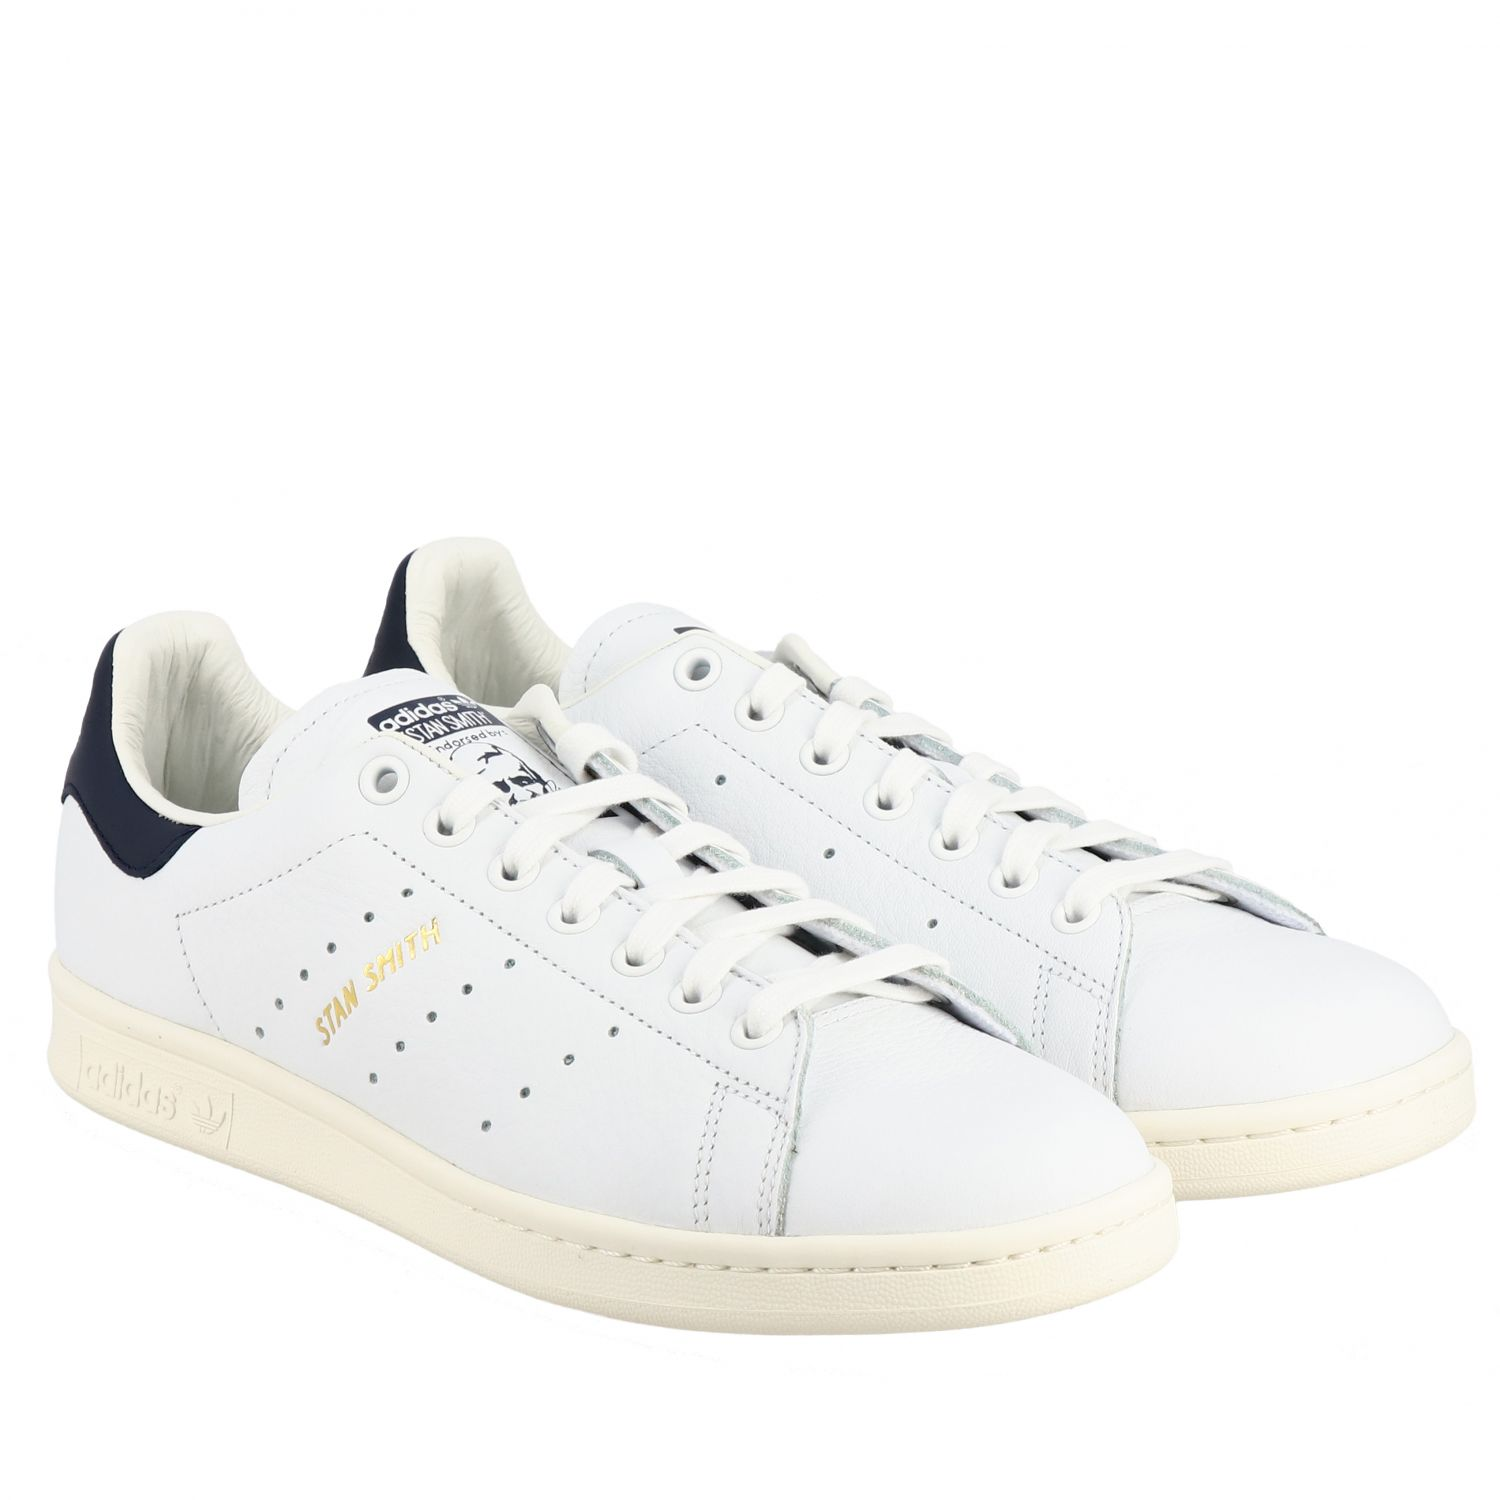 Trainers Adidas Originals: Shoes men Adidas Originals white 2